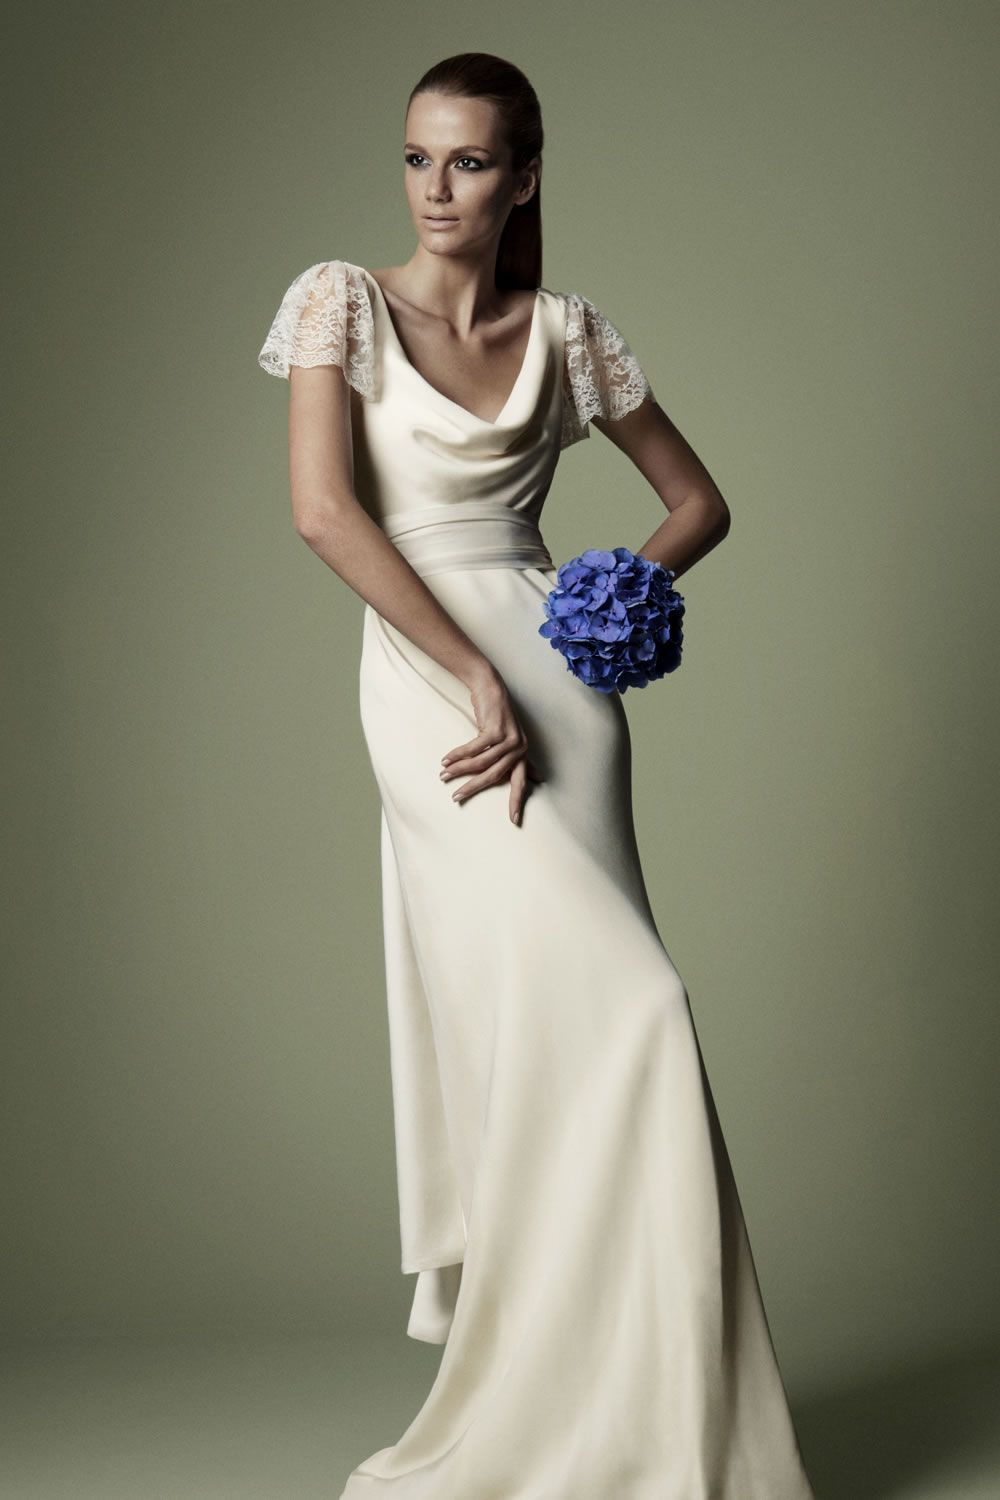 Us style vintage wedding dress co decades silk collection